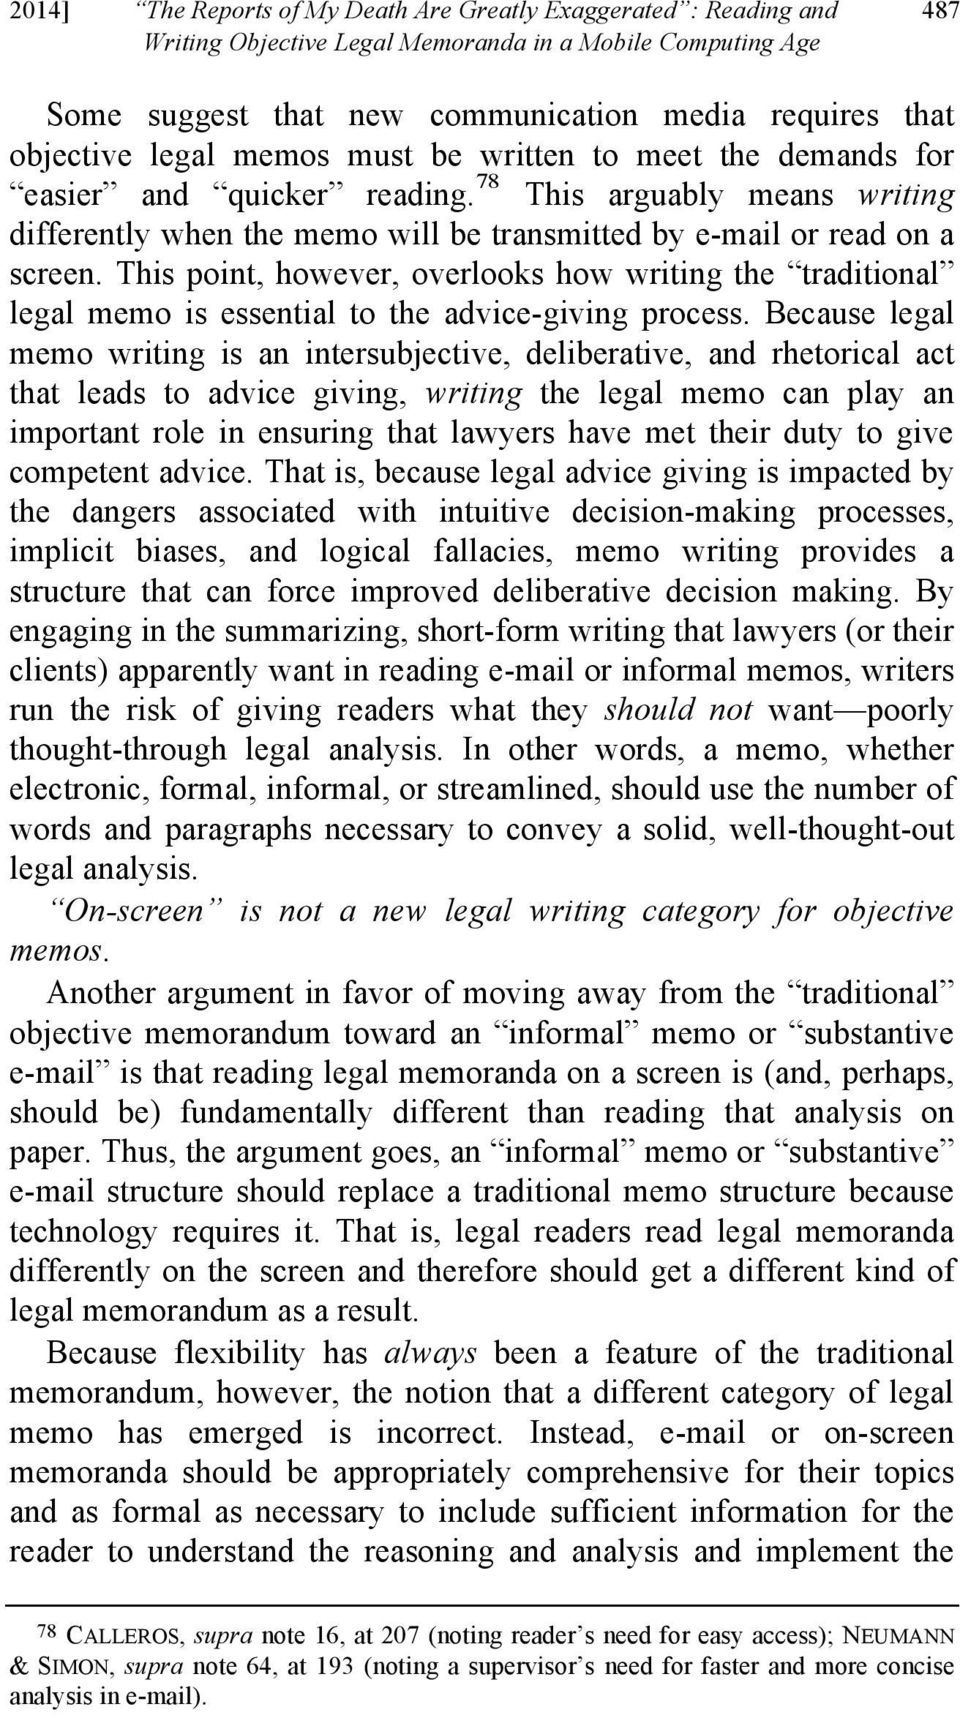 This point, however, overlooks how writing the traditional legal memo is essential to the advice-giving process.